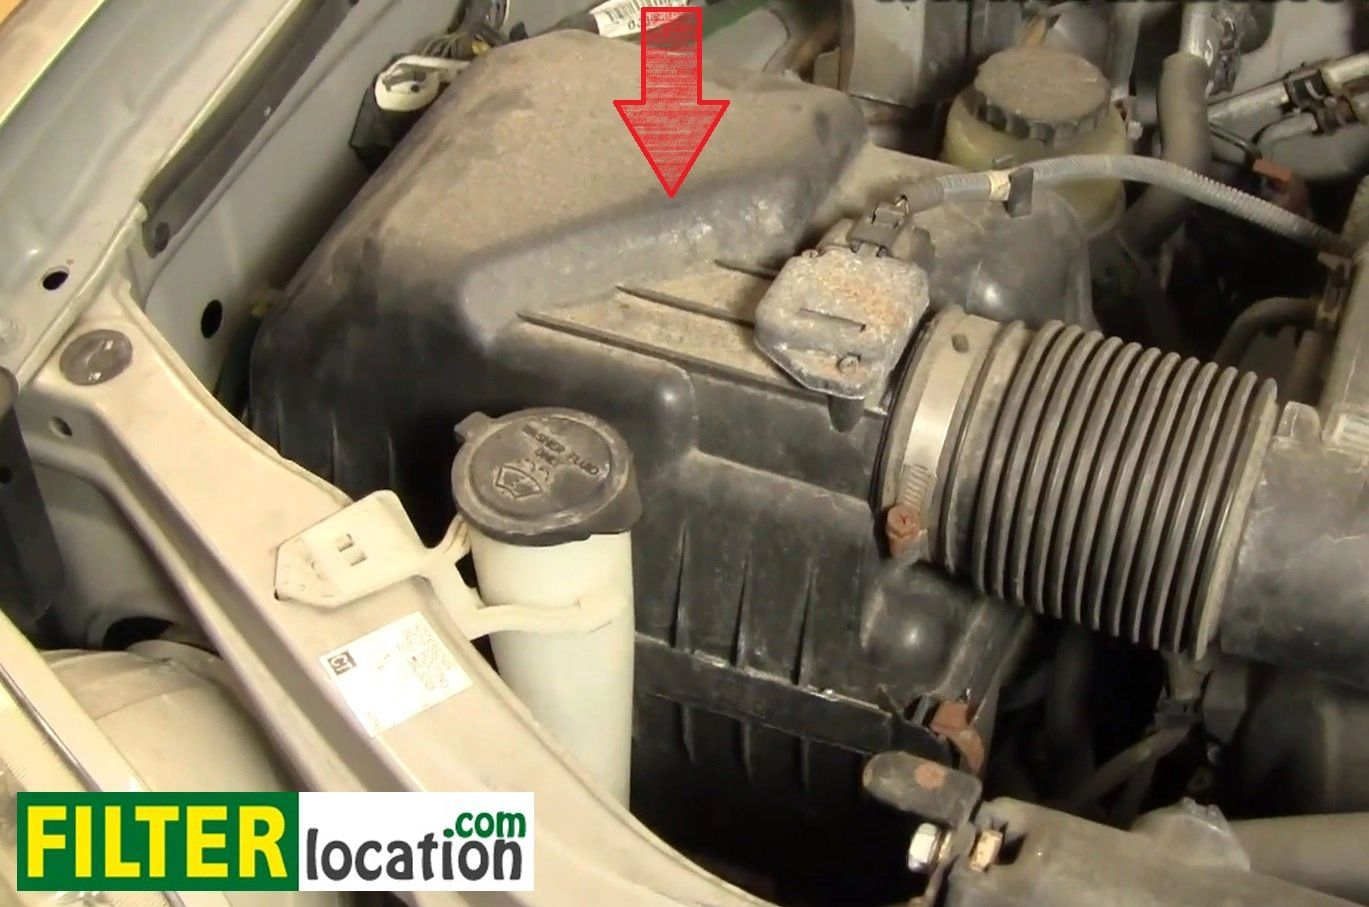 2005 Tacoma Fuel Filter Auto Electrical Wiring Diagram Sequoia 2007 Location Html